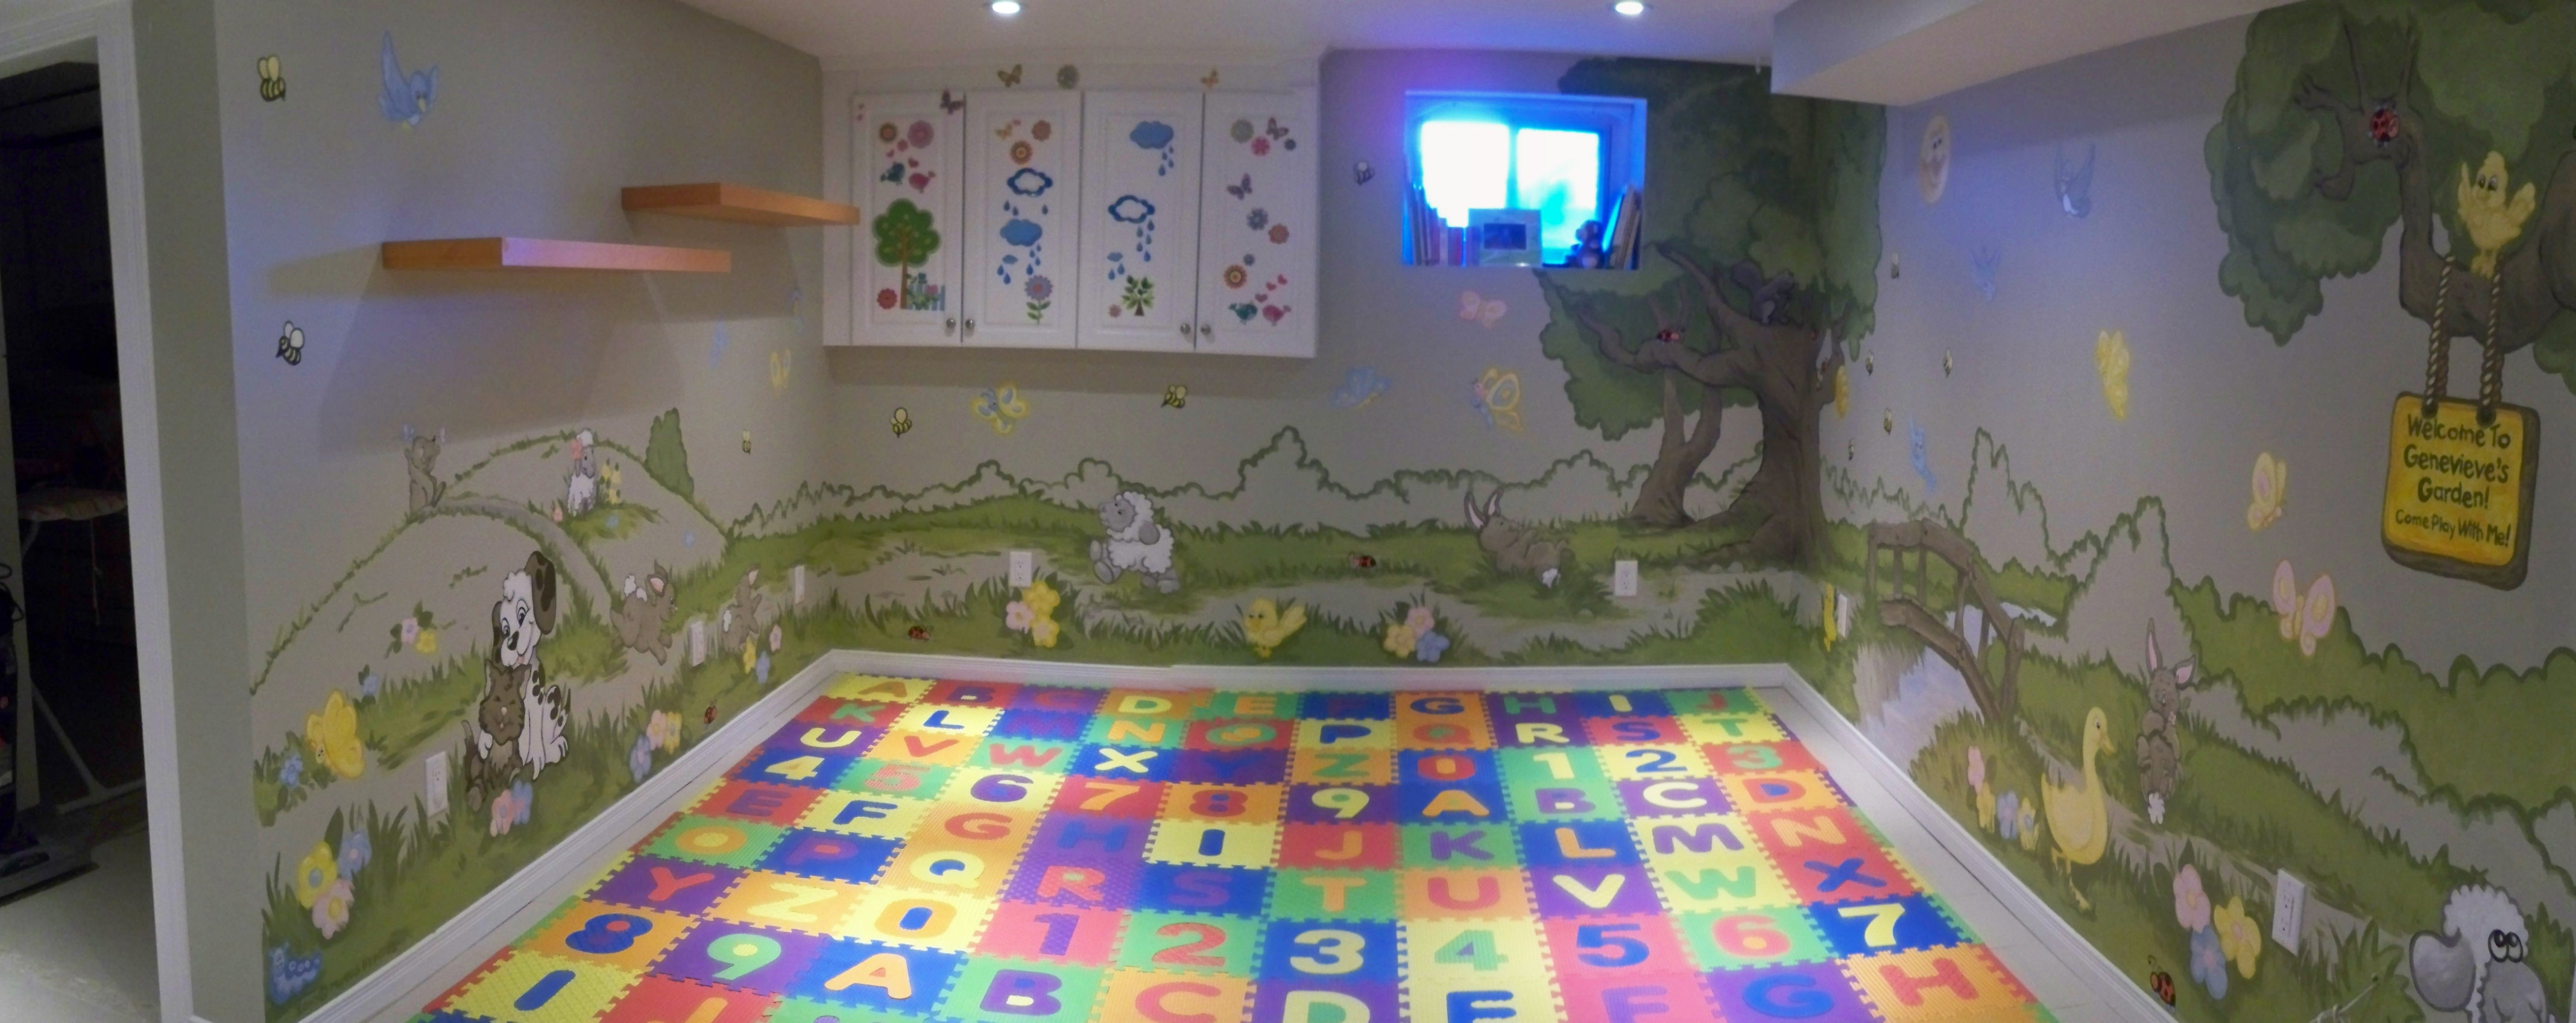 Murals By Marg Genevieve's Playroom Mural 1.JPG